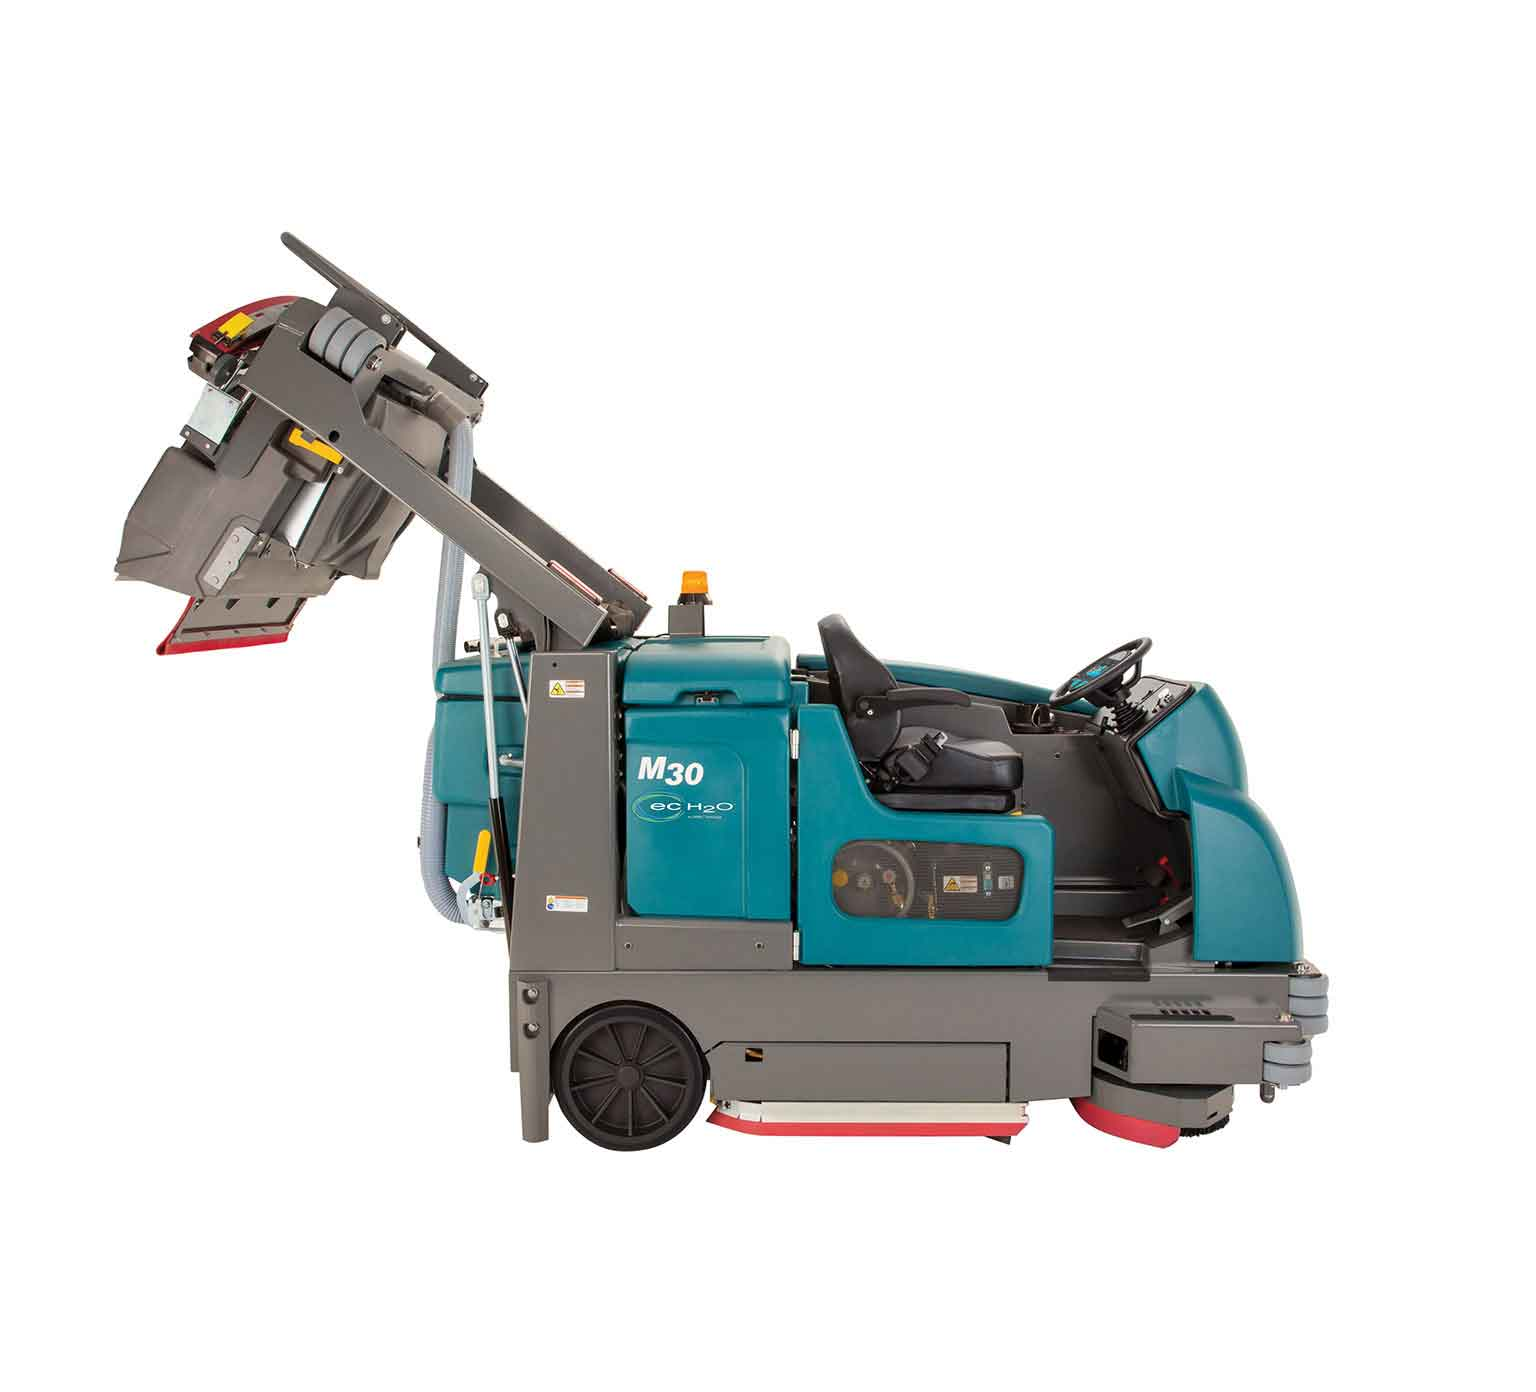 Tennant M30 Sweeper Scrubber Powervac Cleaning Equipment